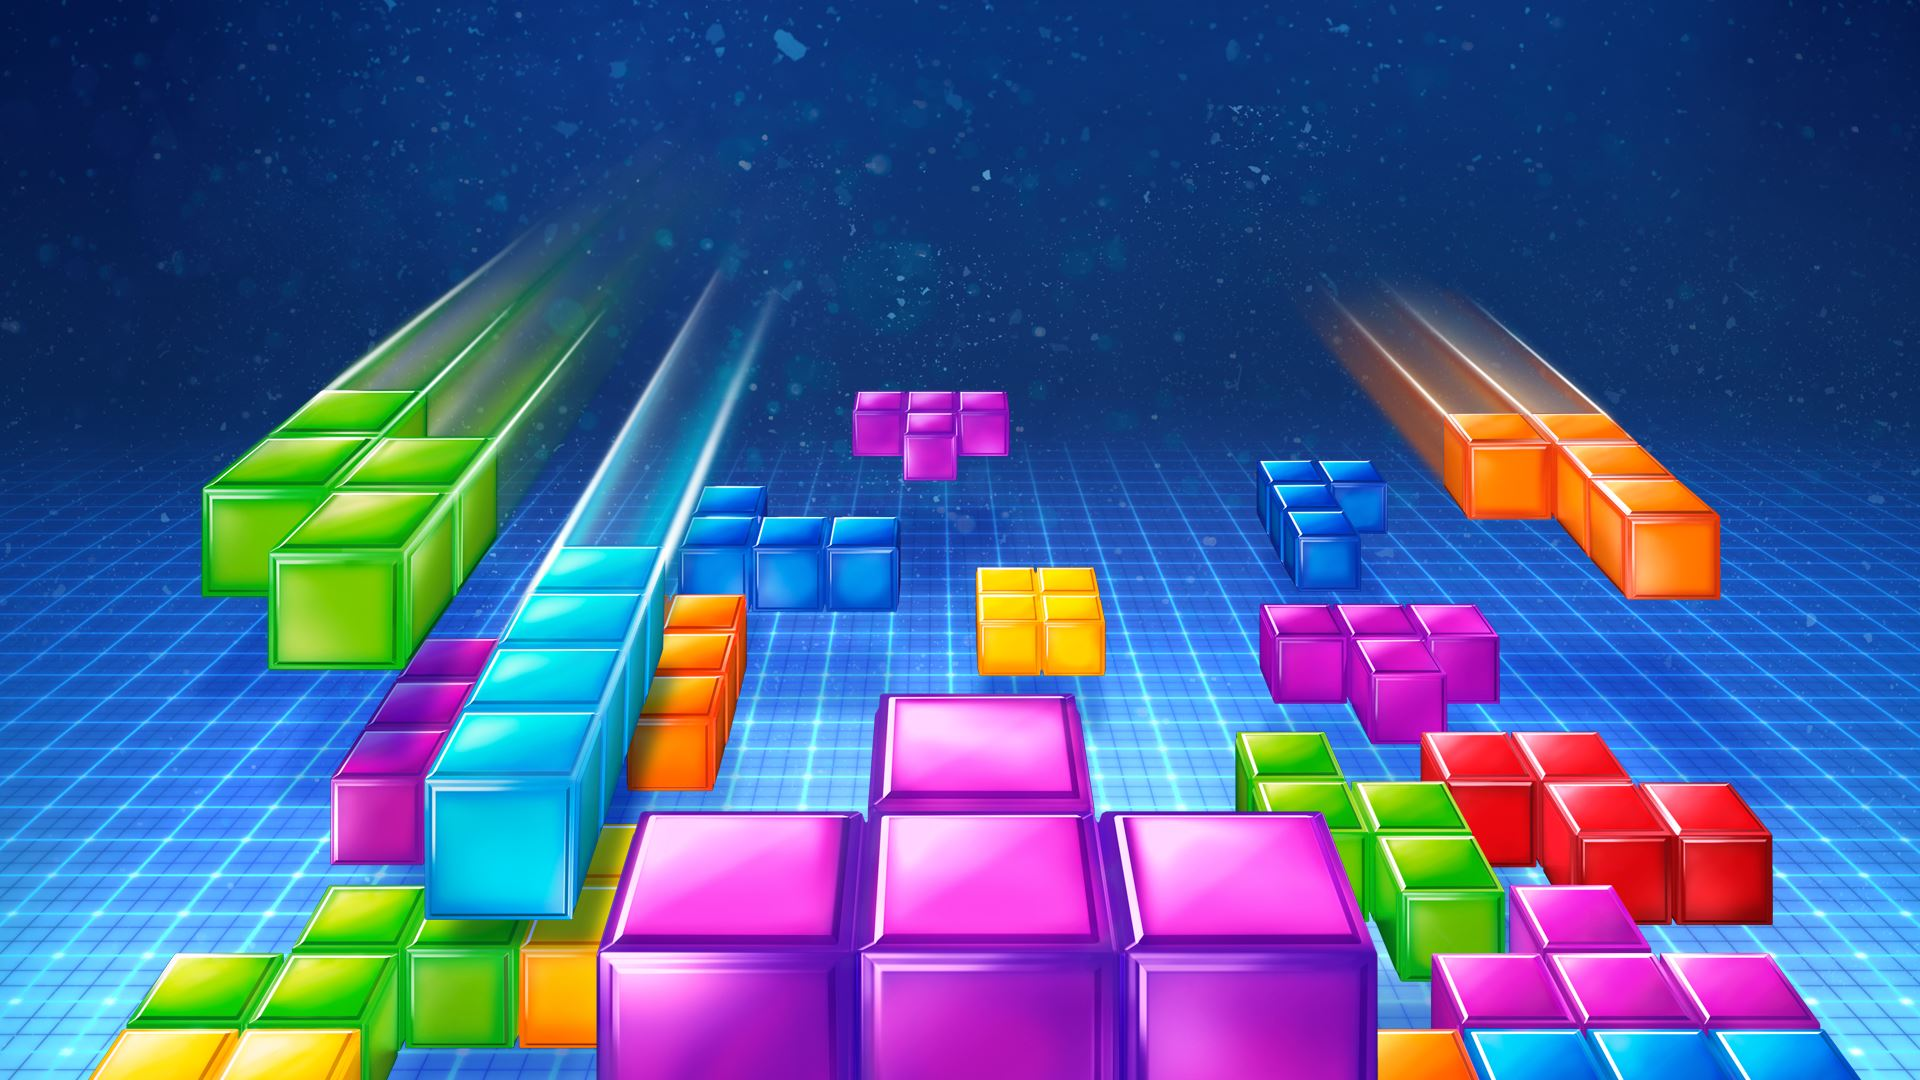 Tetris HD Wallpapers and Background Images   stmednet 1920x1080